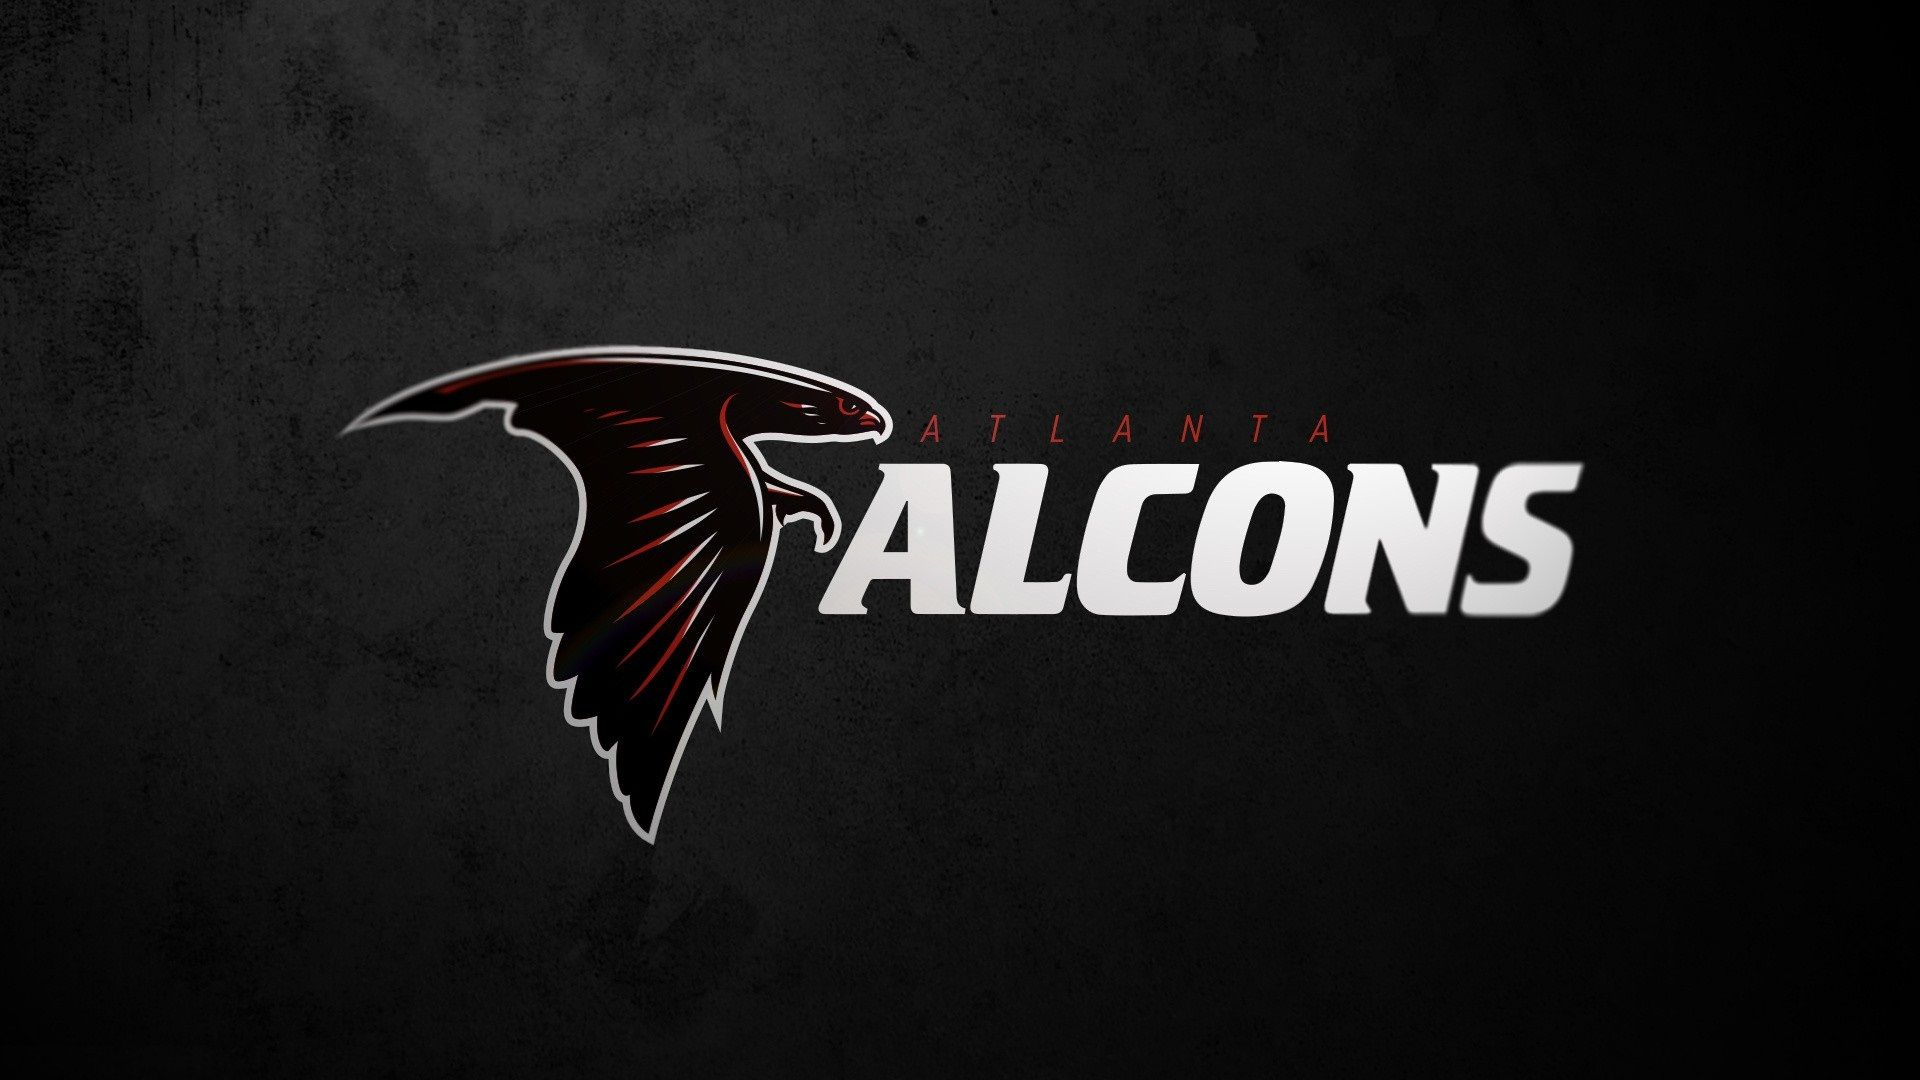 Nfl Wallpapers Nfl Teams Logos 32 Nfl Teams Atlanta Falcons Logo